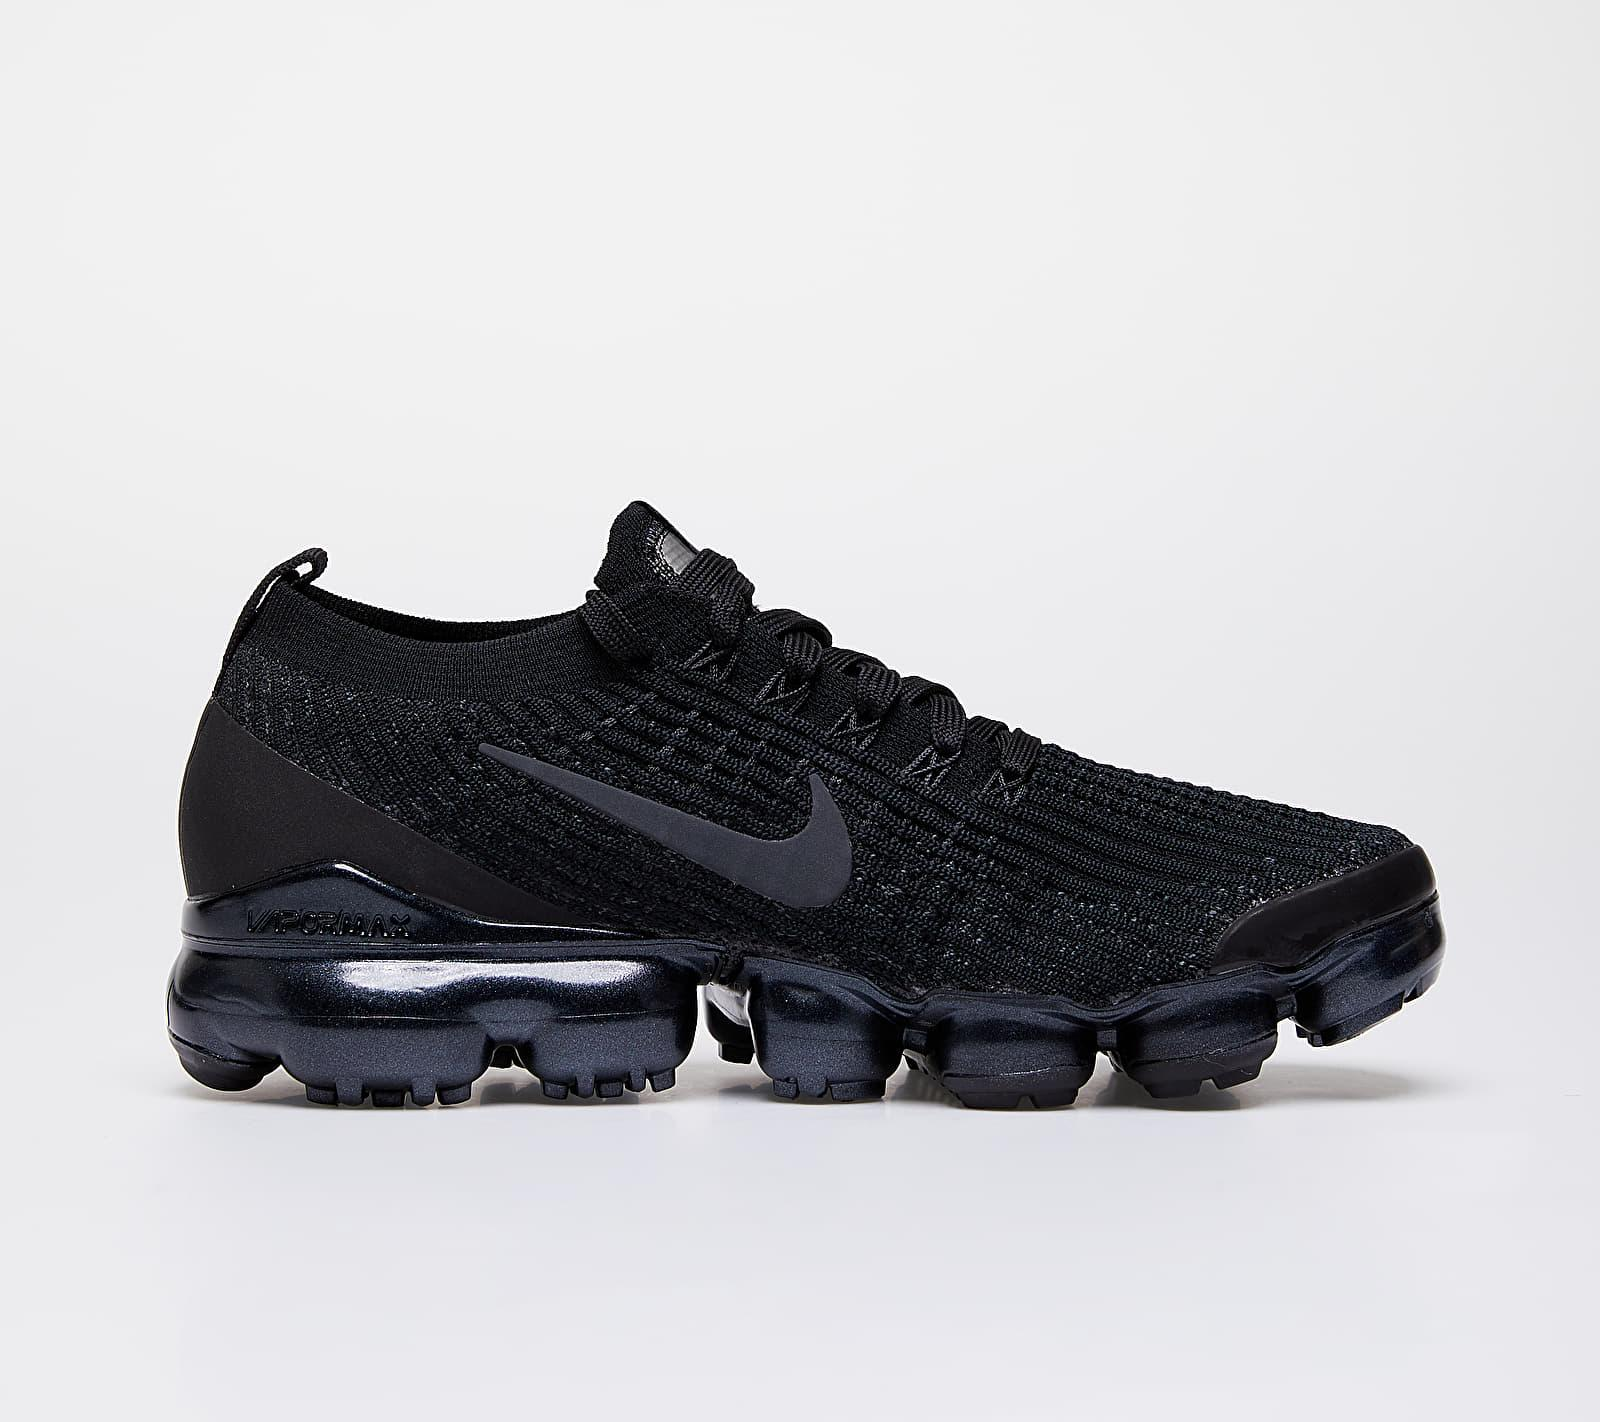 W Air Vapormax Flyknit 3 Black/ Anthracite-White-Metallic Silver Nike